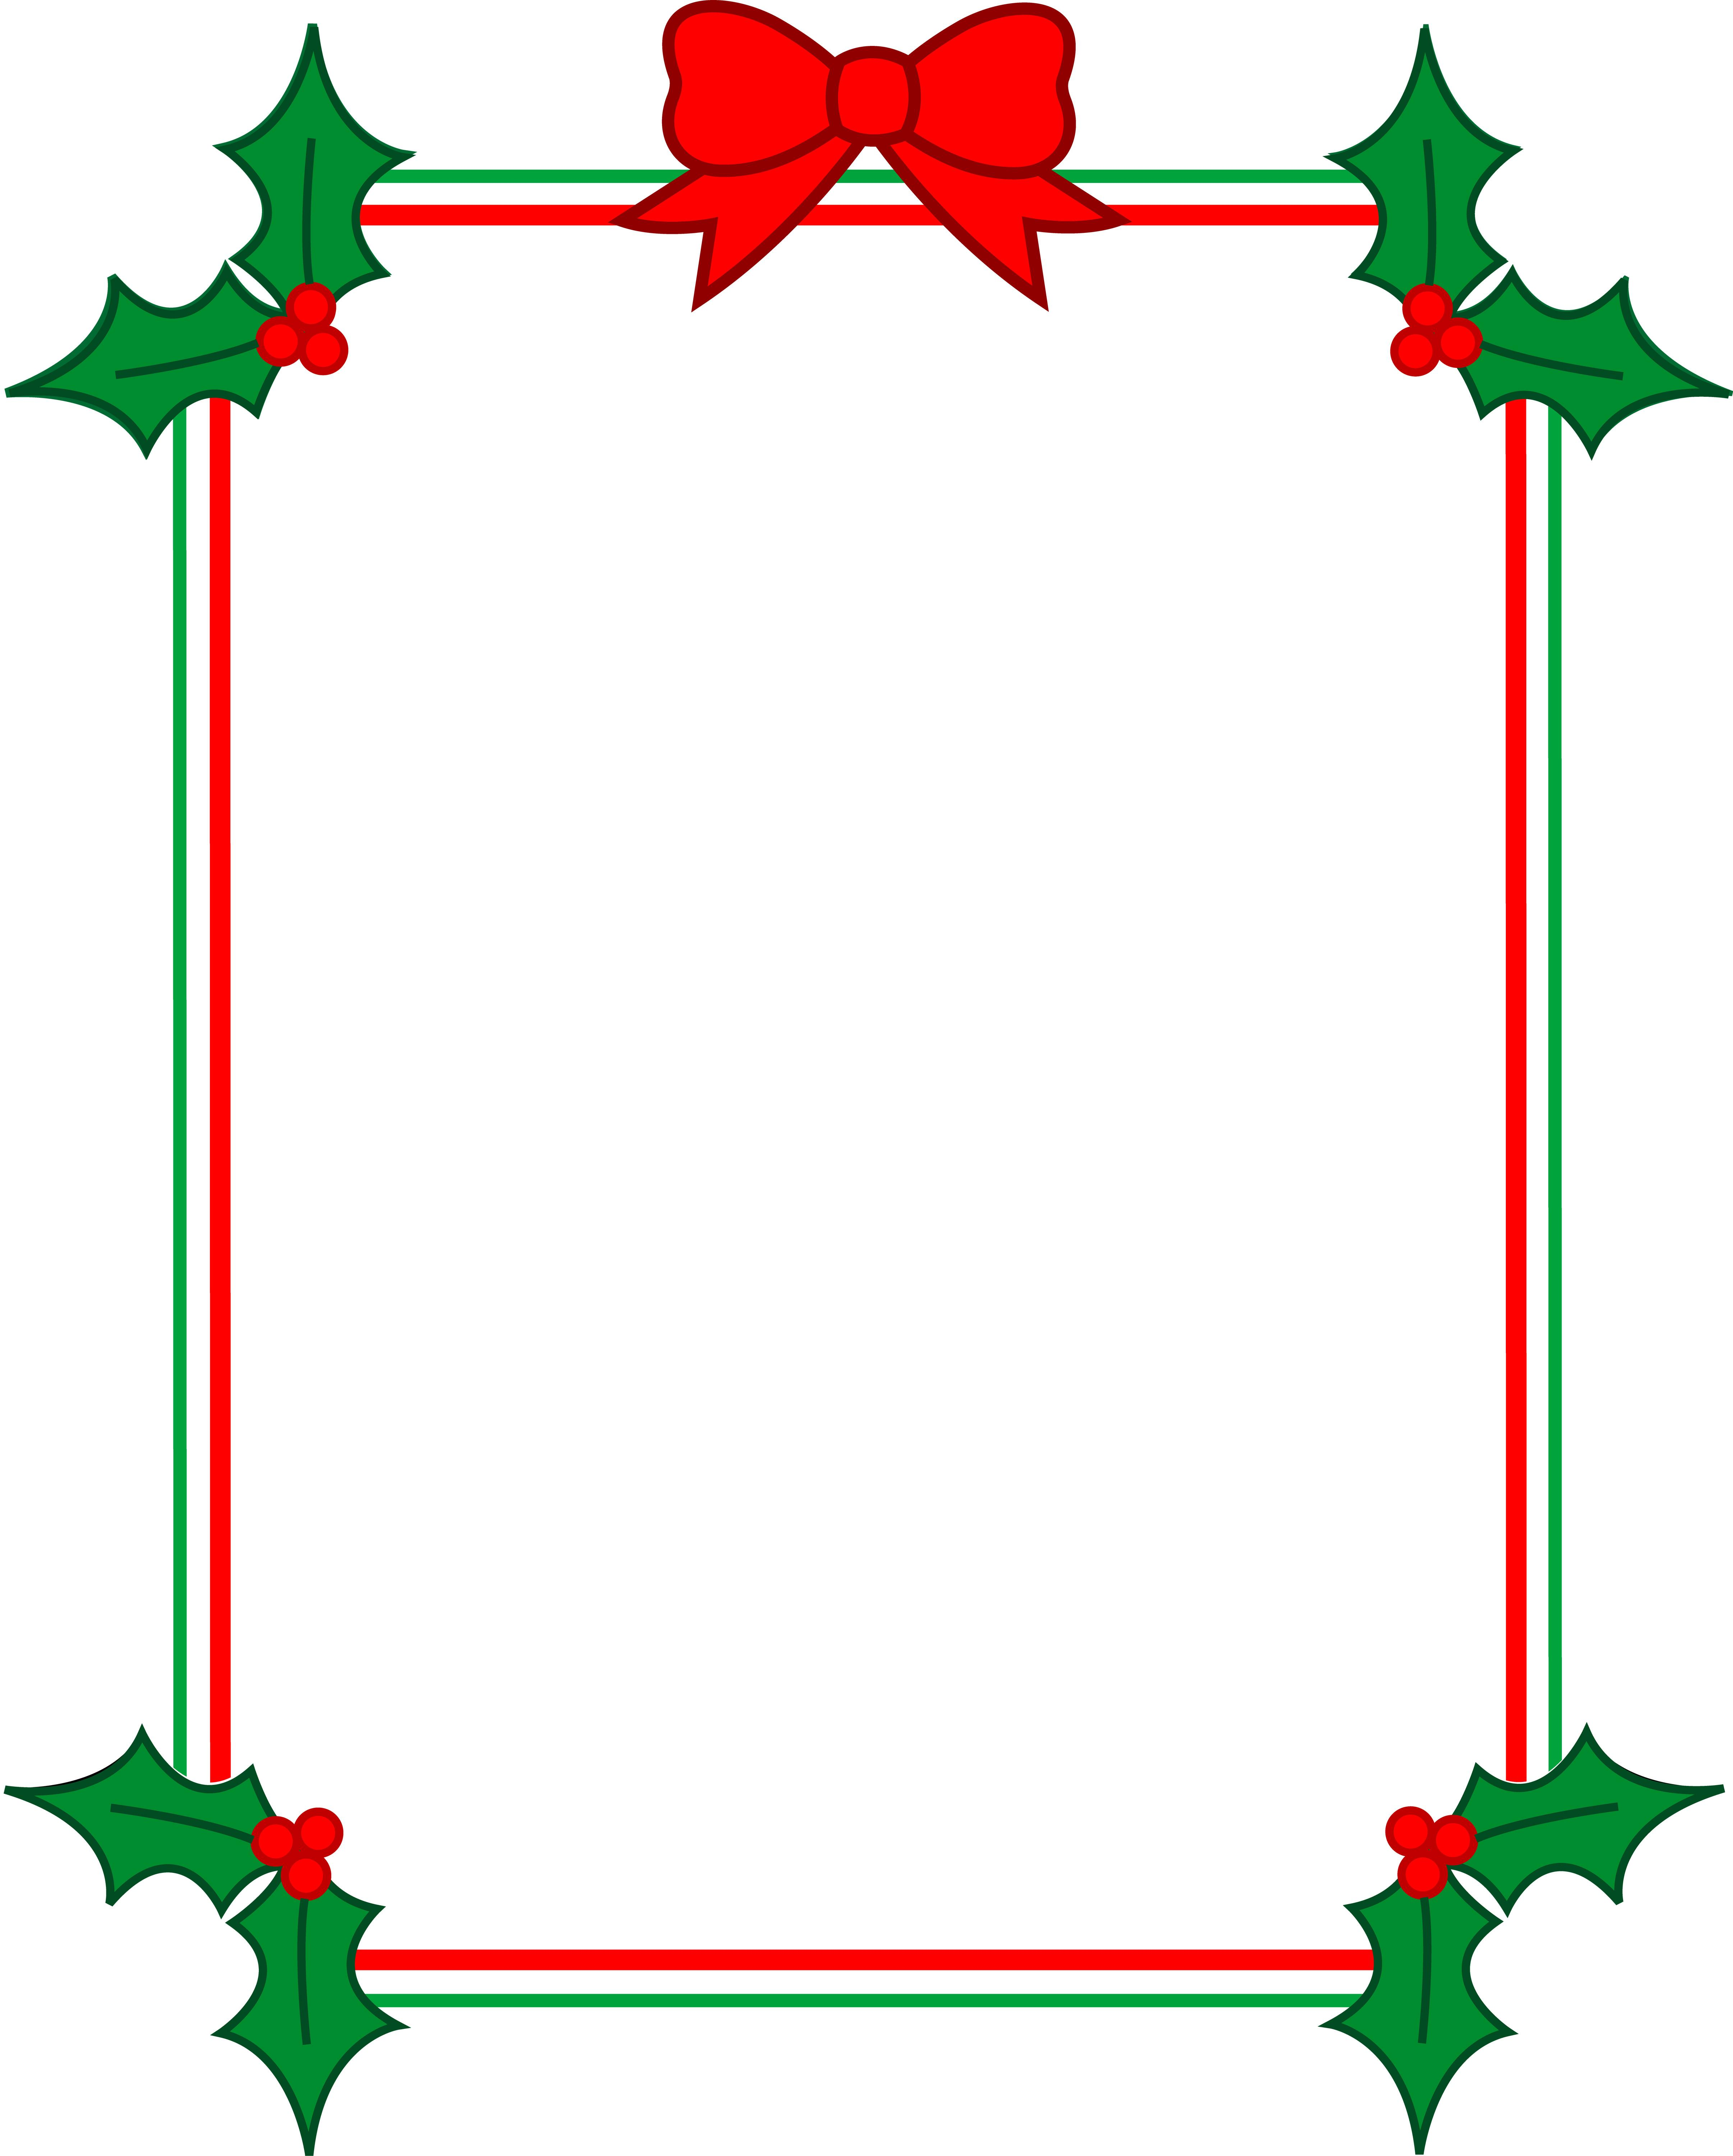 Christmas Clip Art Borders For Word Documents.